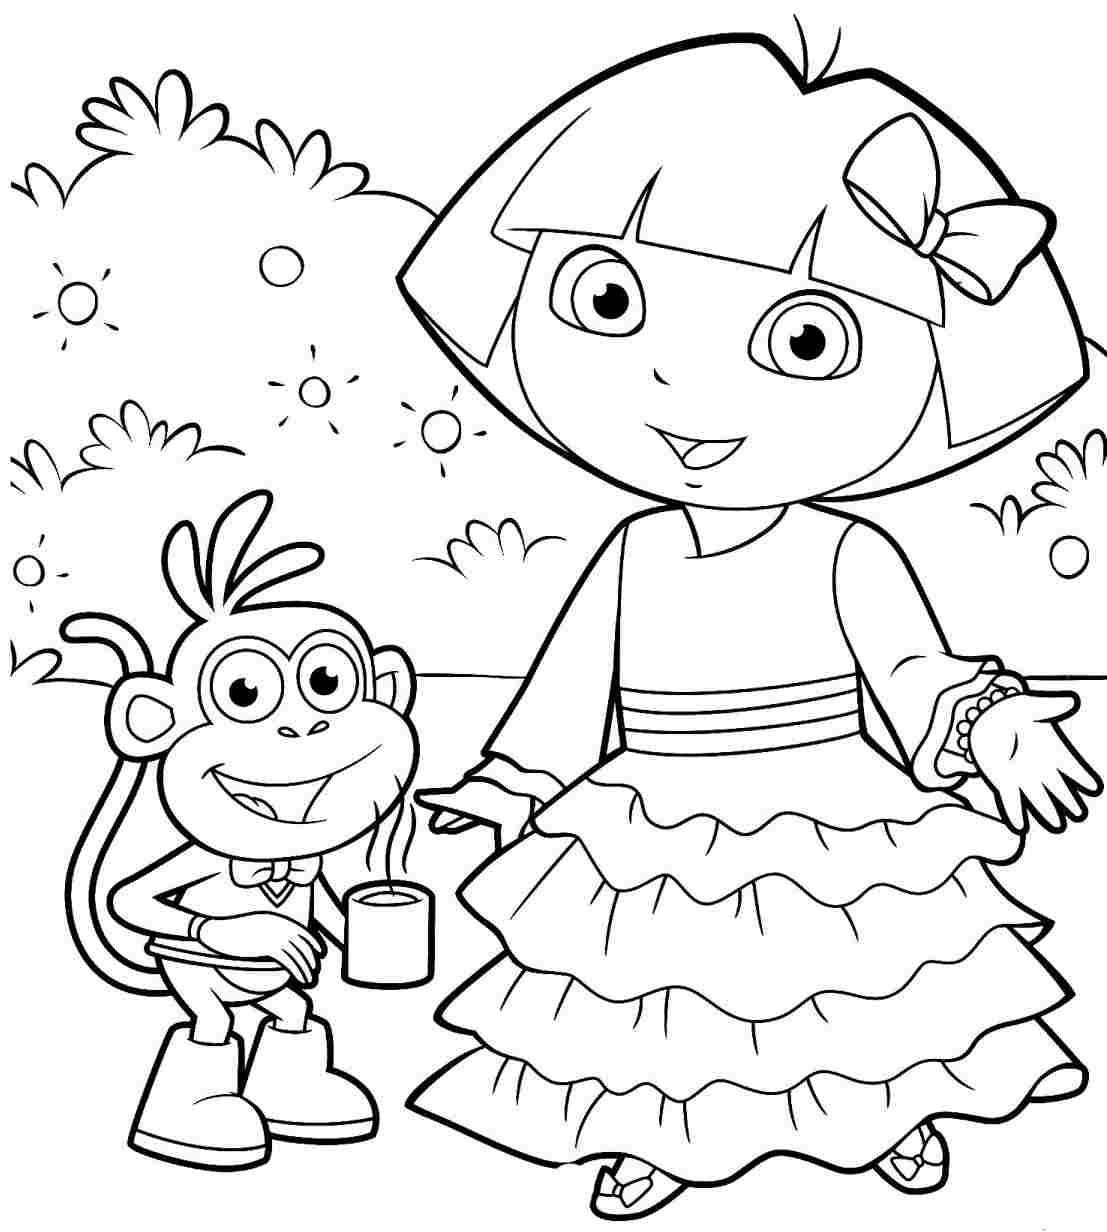 dora colouring pages printable dora 58 coloringcolorcom colouring pages dora printable